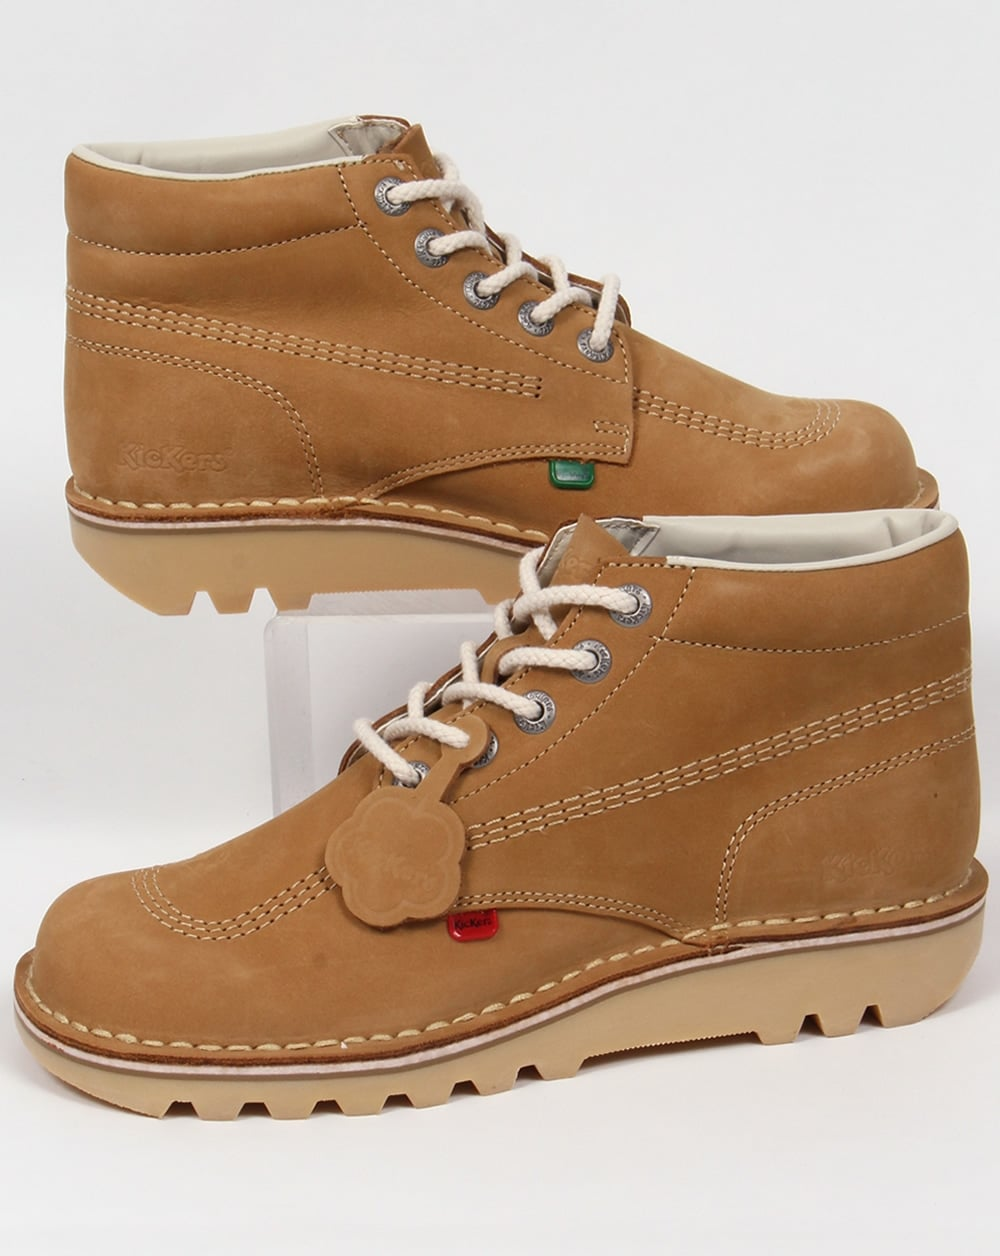 Kickers Kick Hi Boots In Nubuck Tan,shoe,chunky,mens